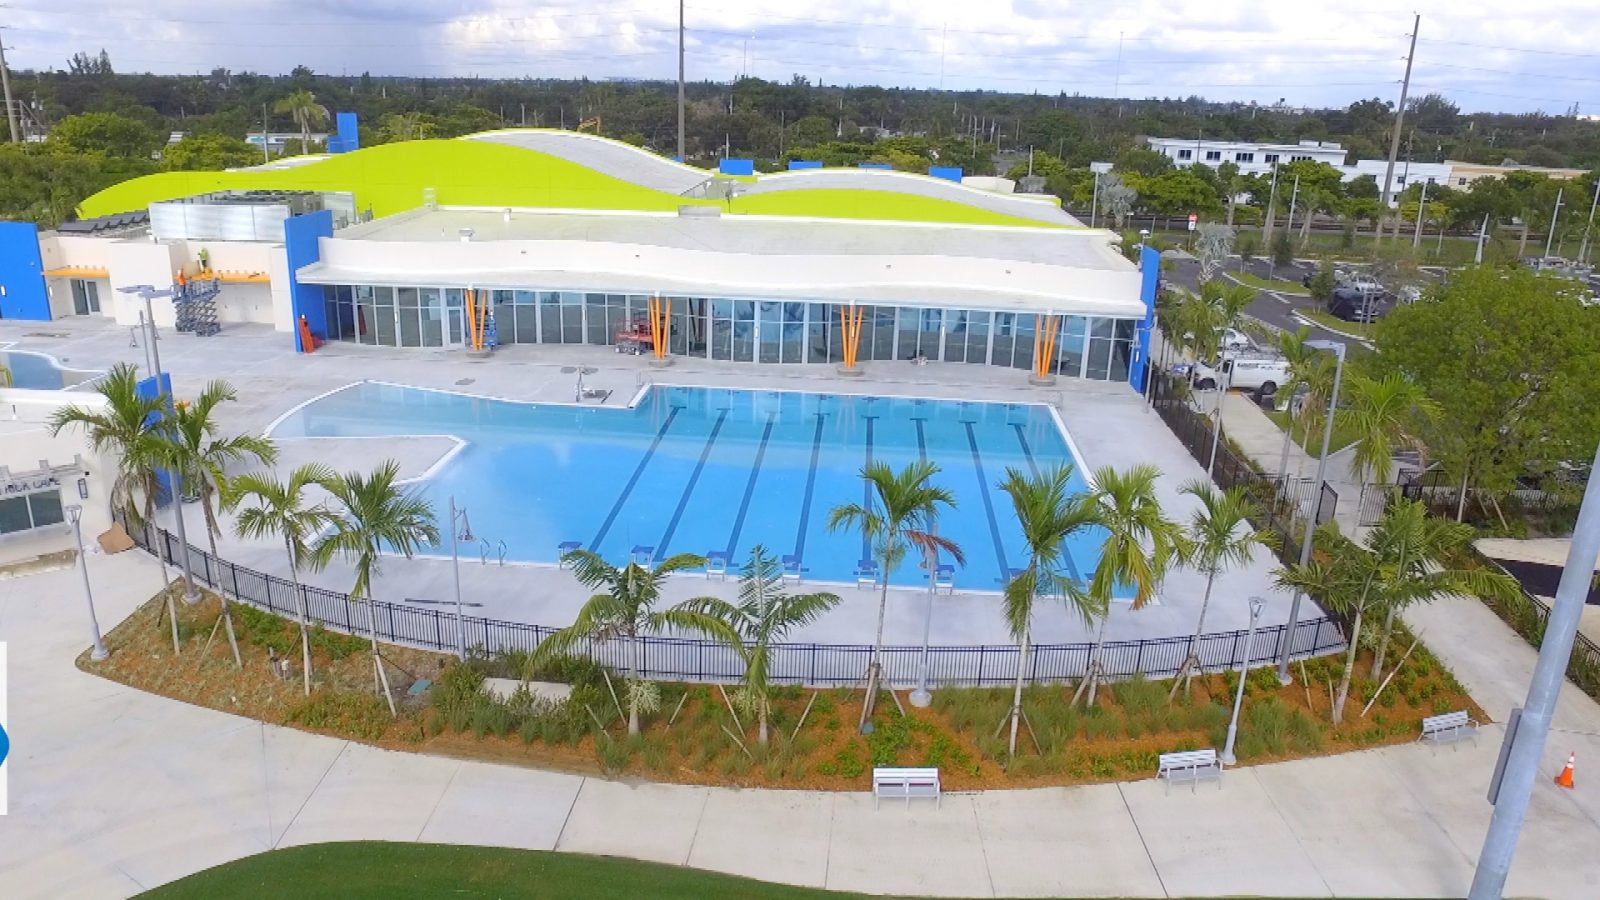 HALLANDALE BEACH YMCA NOW OPEN